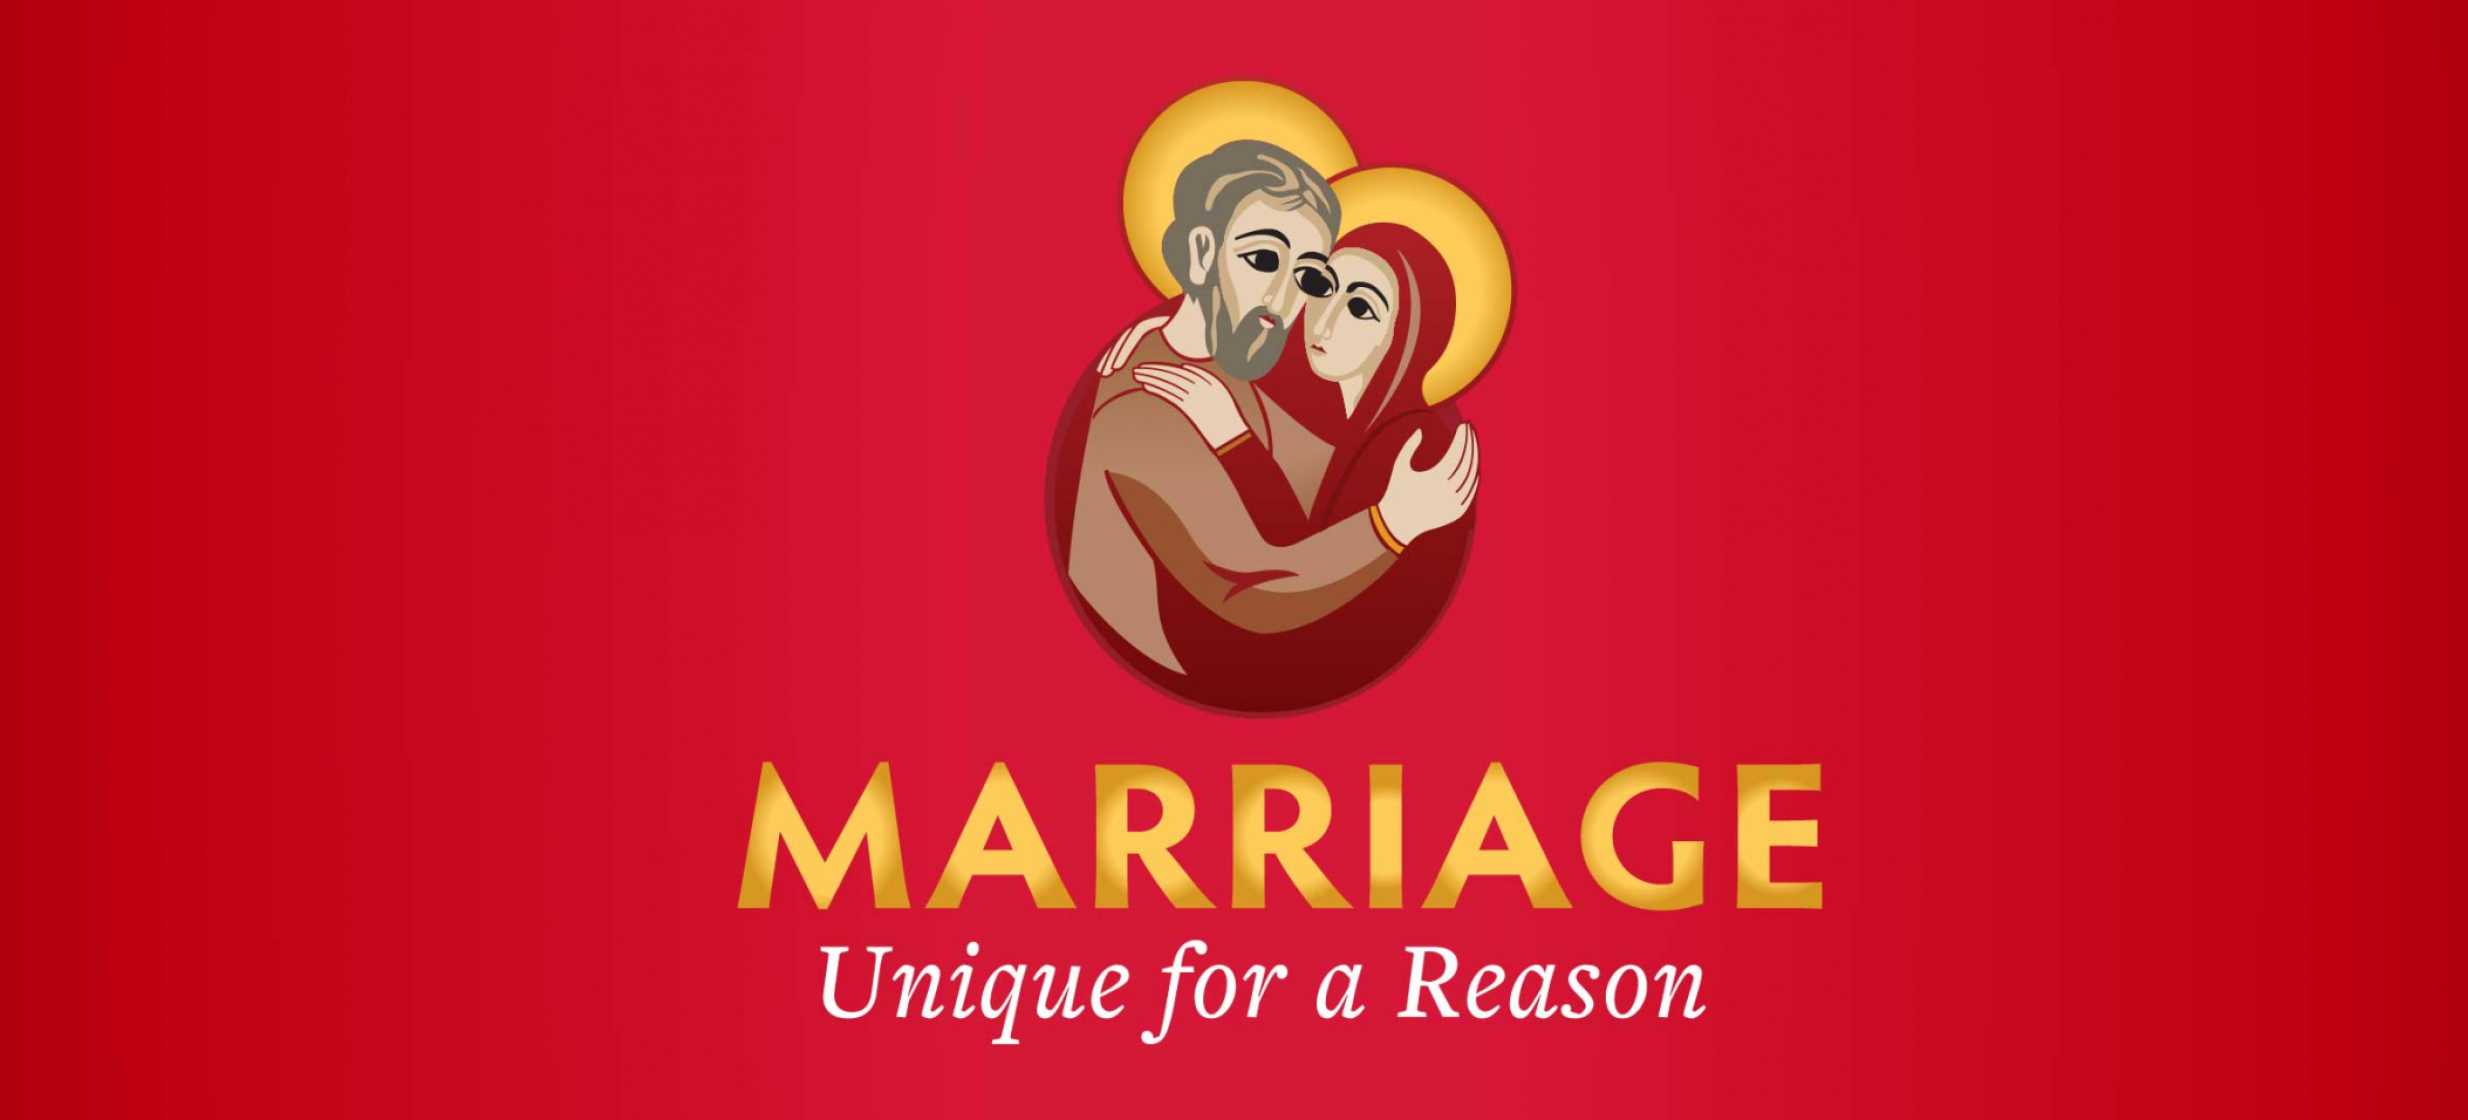 Marriage Unique for a Reason link